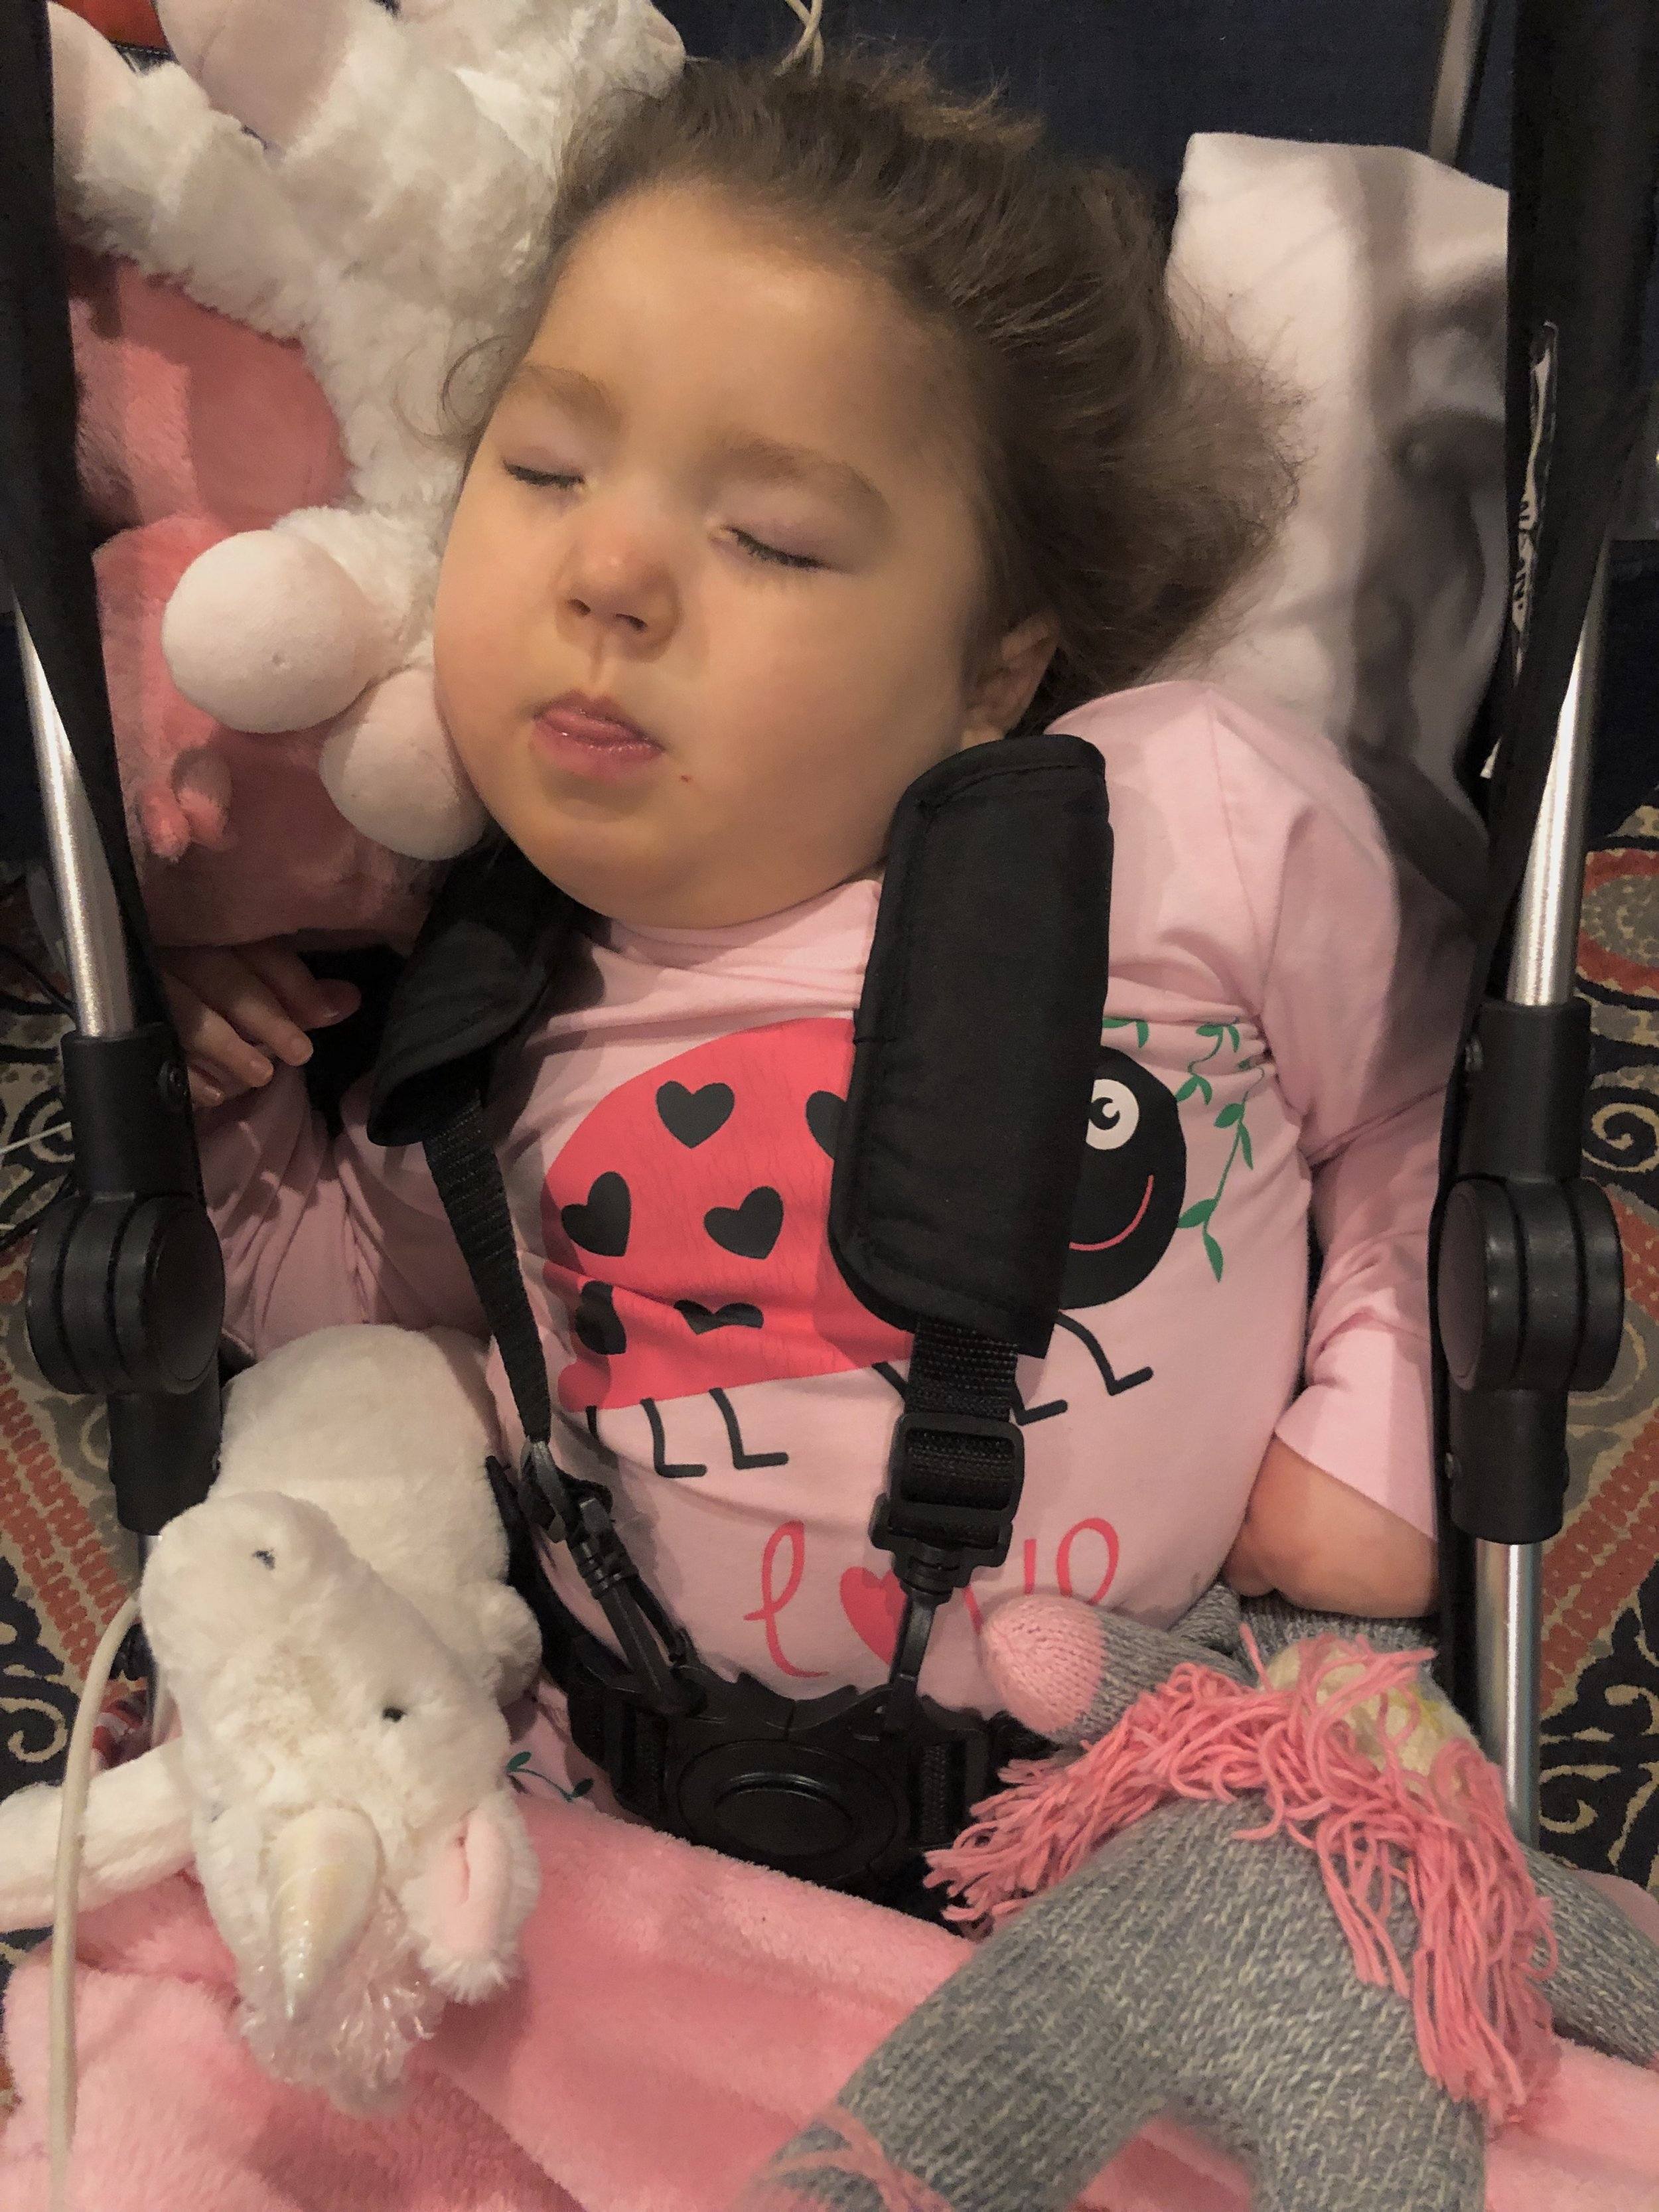 Cruising the hallways in her stroller seems to help some of the fussiness. Stuffed animals also clearly help.